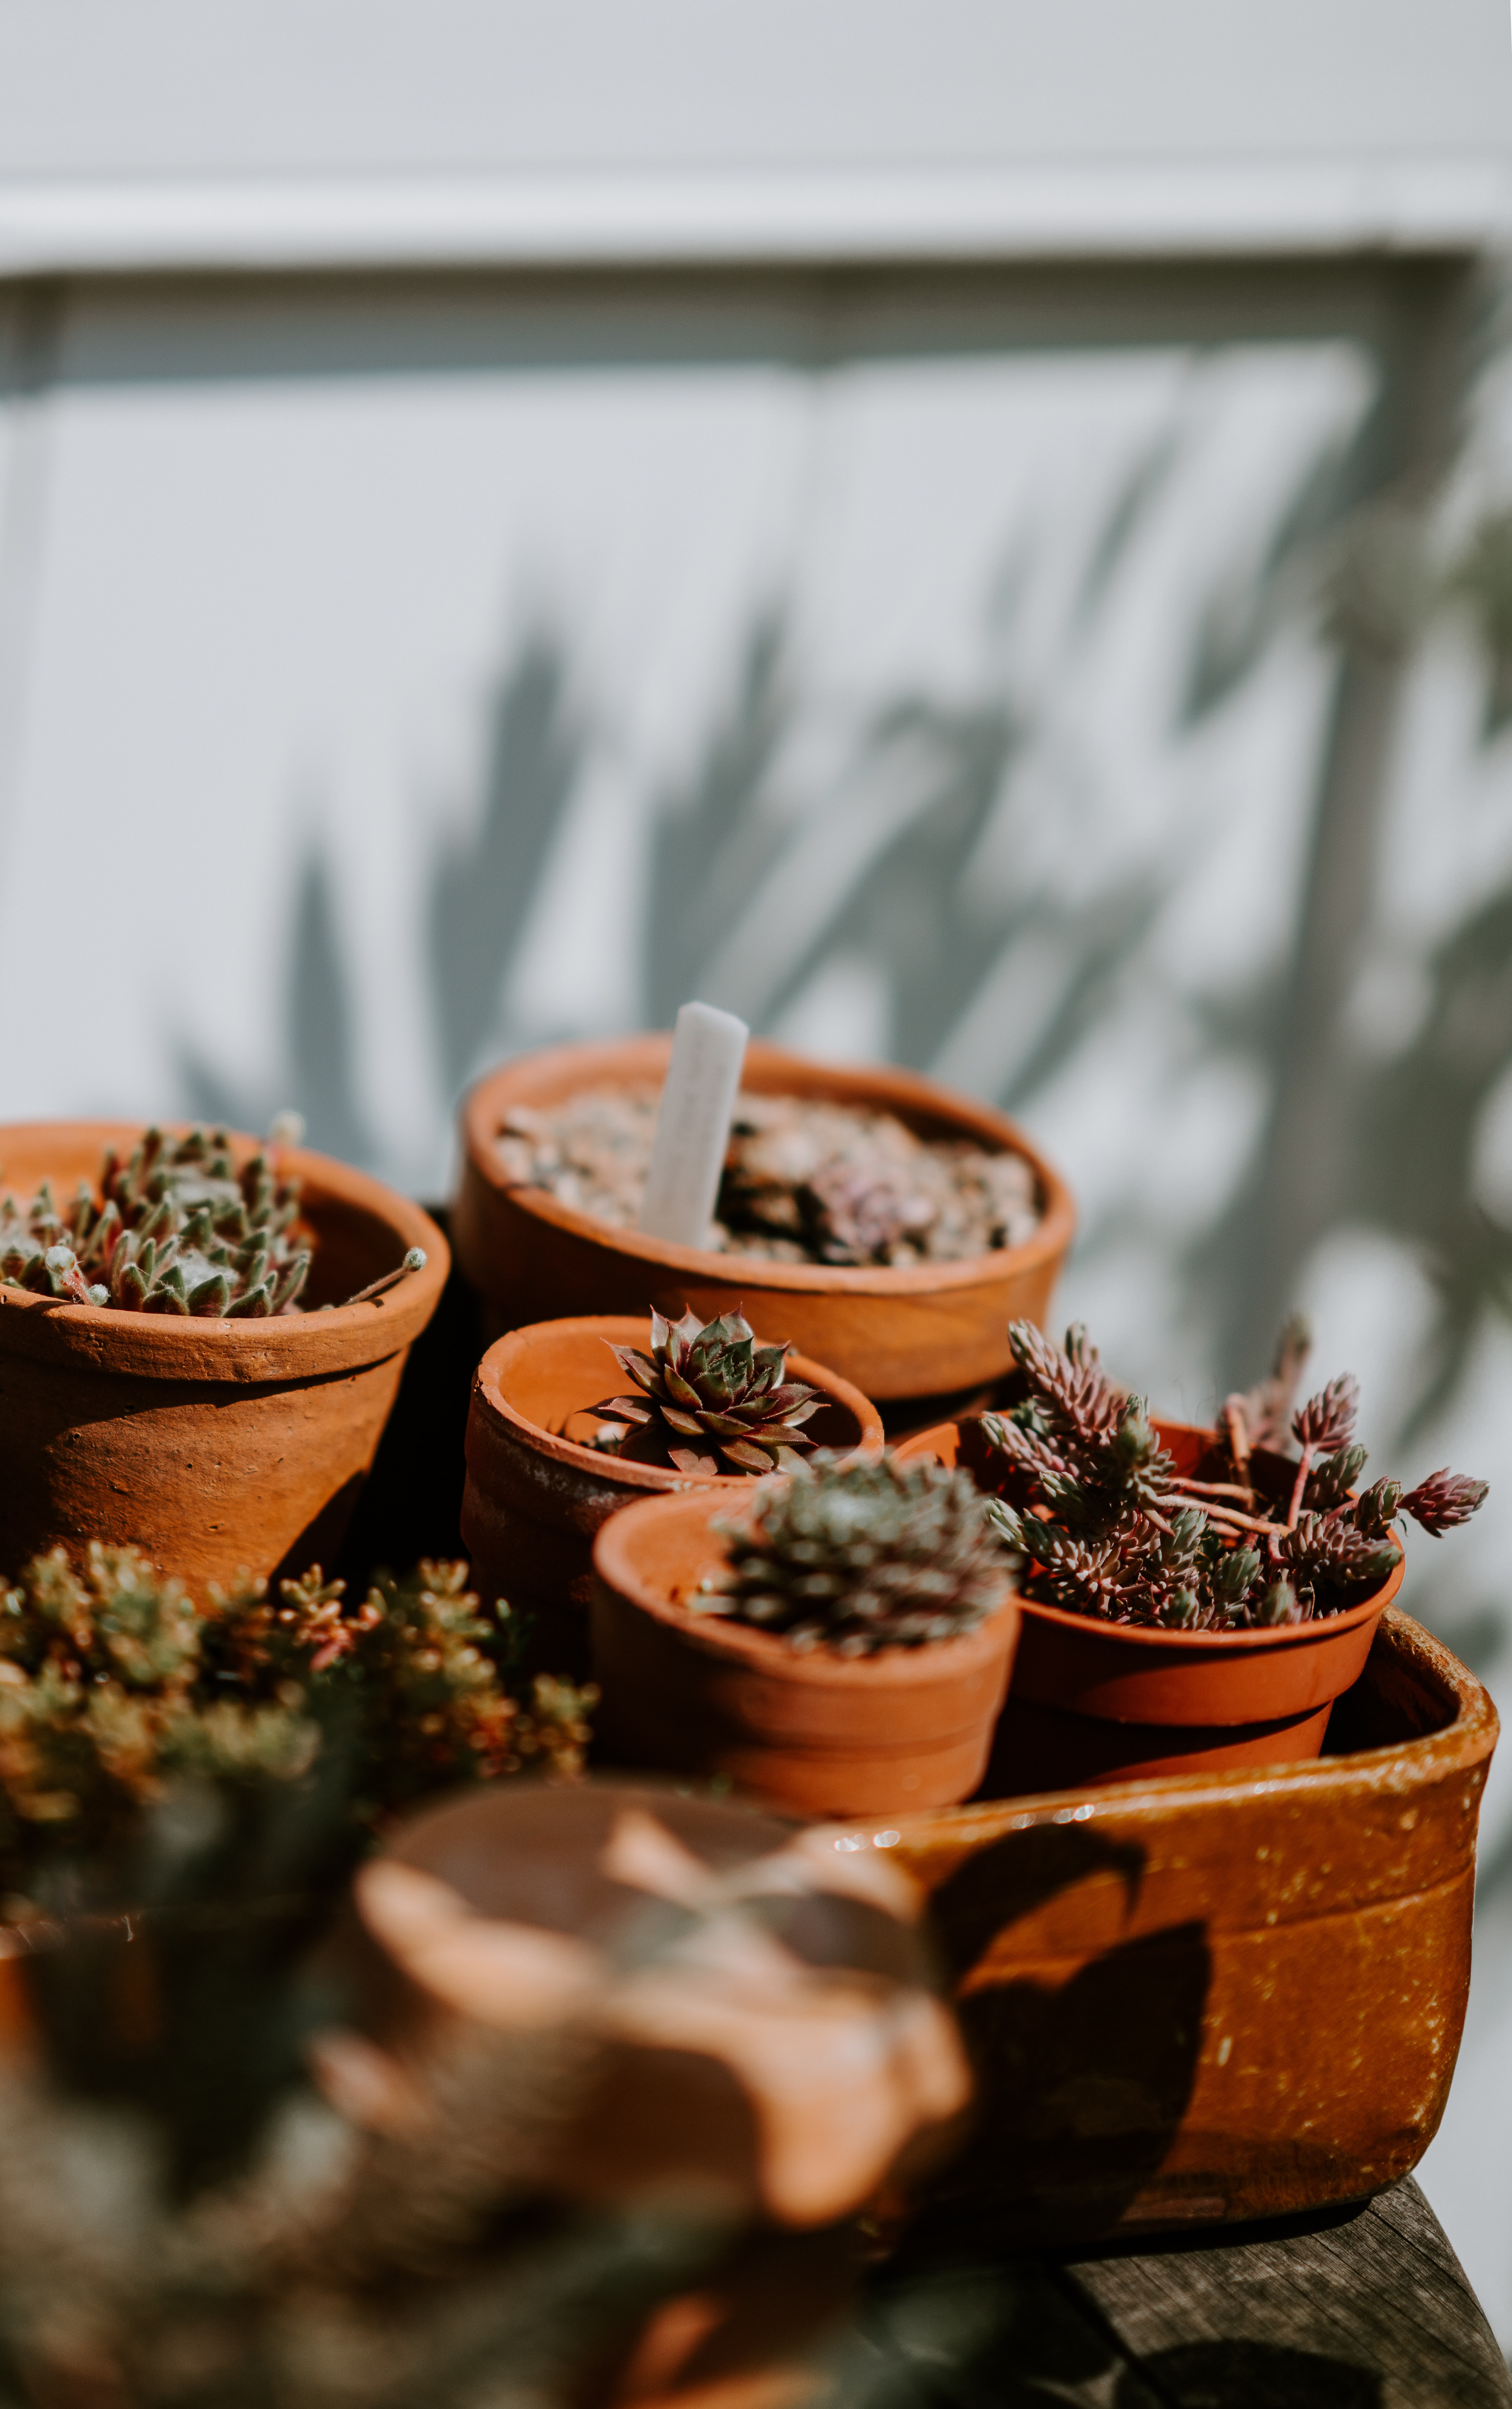 green plant in brown pots